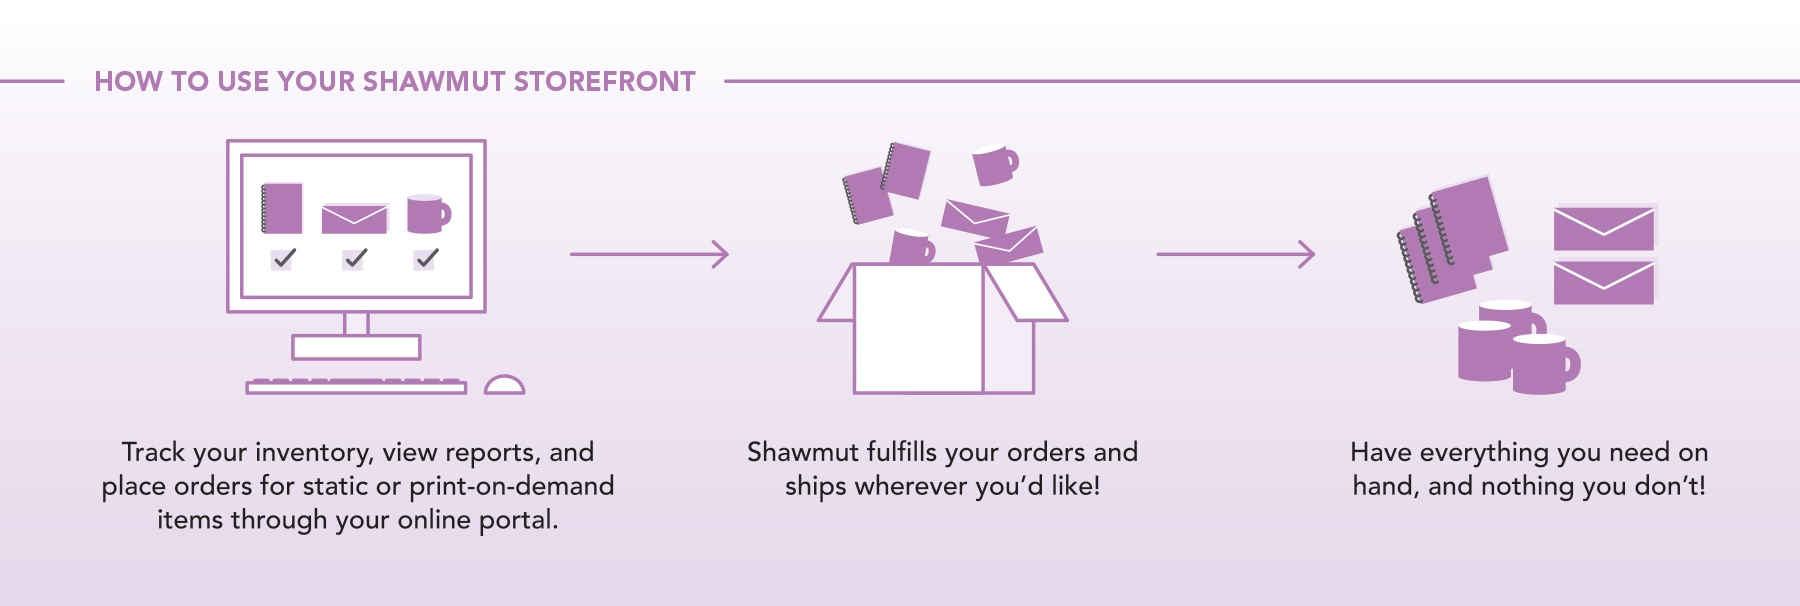 How to use your Shawmut Storefront